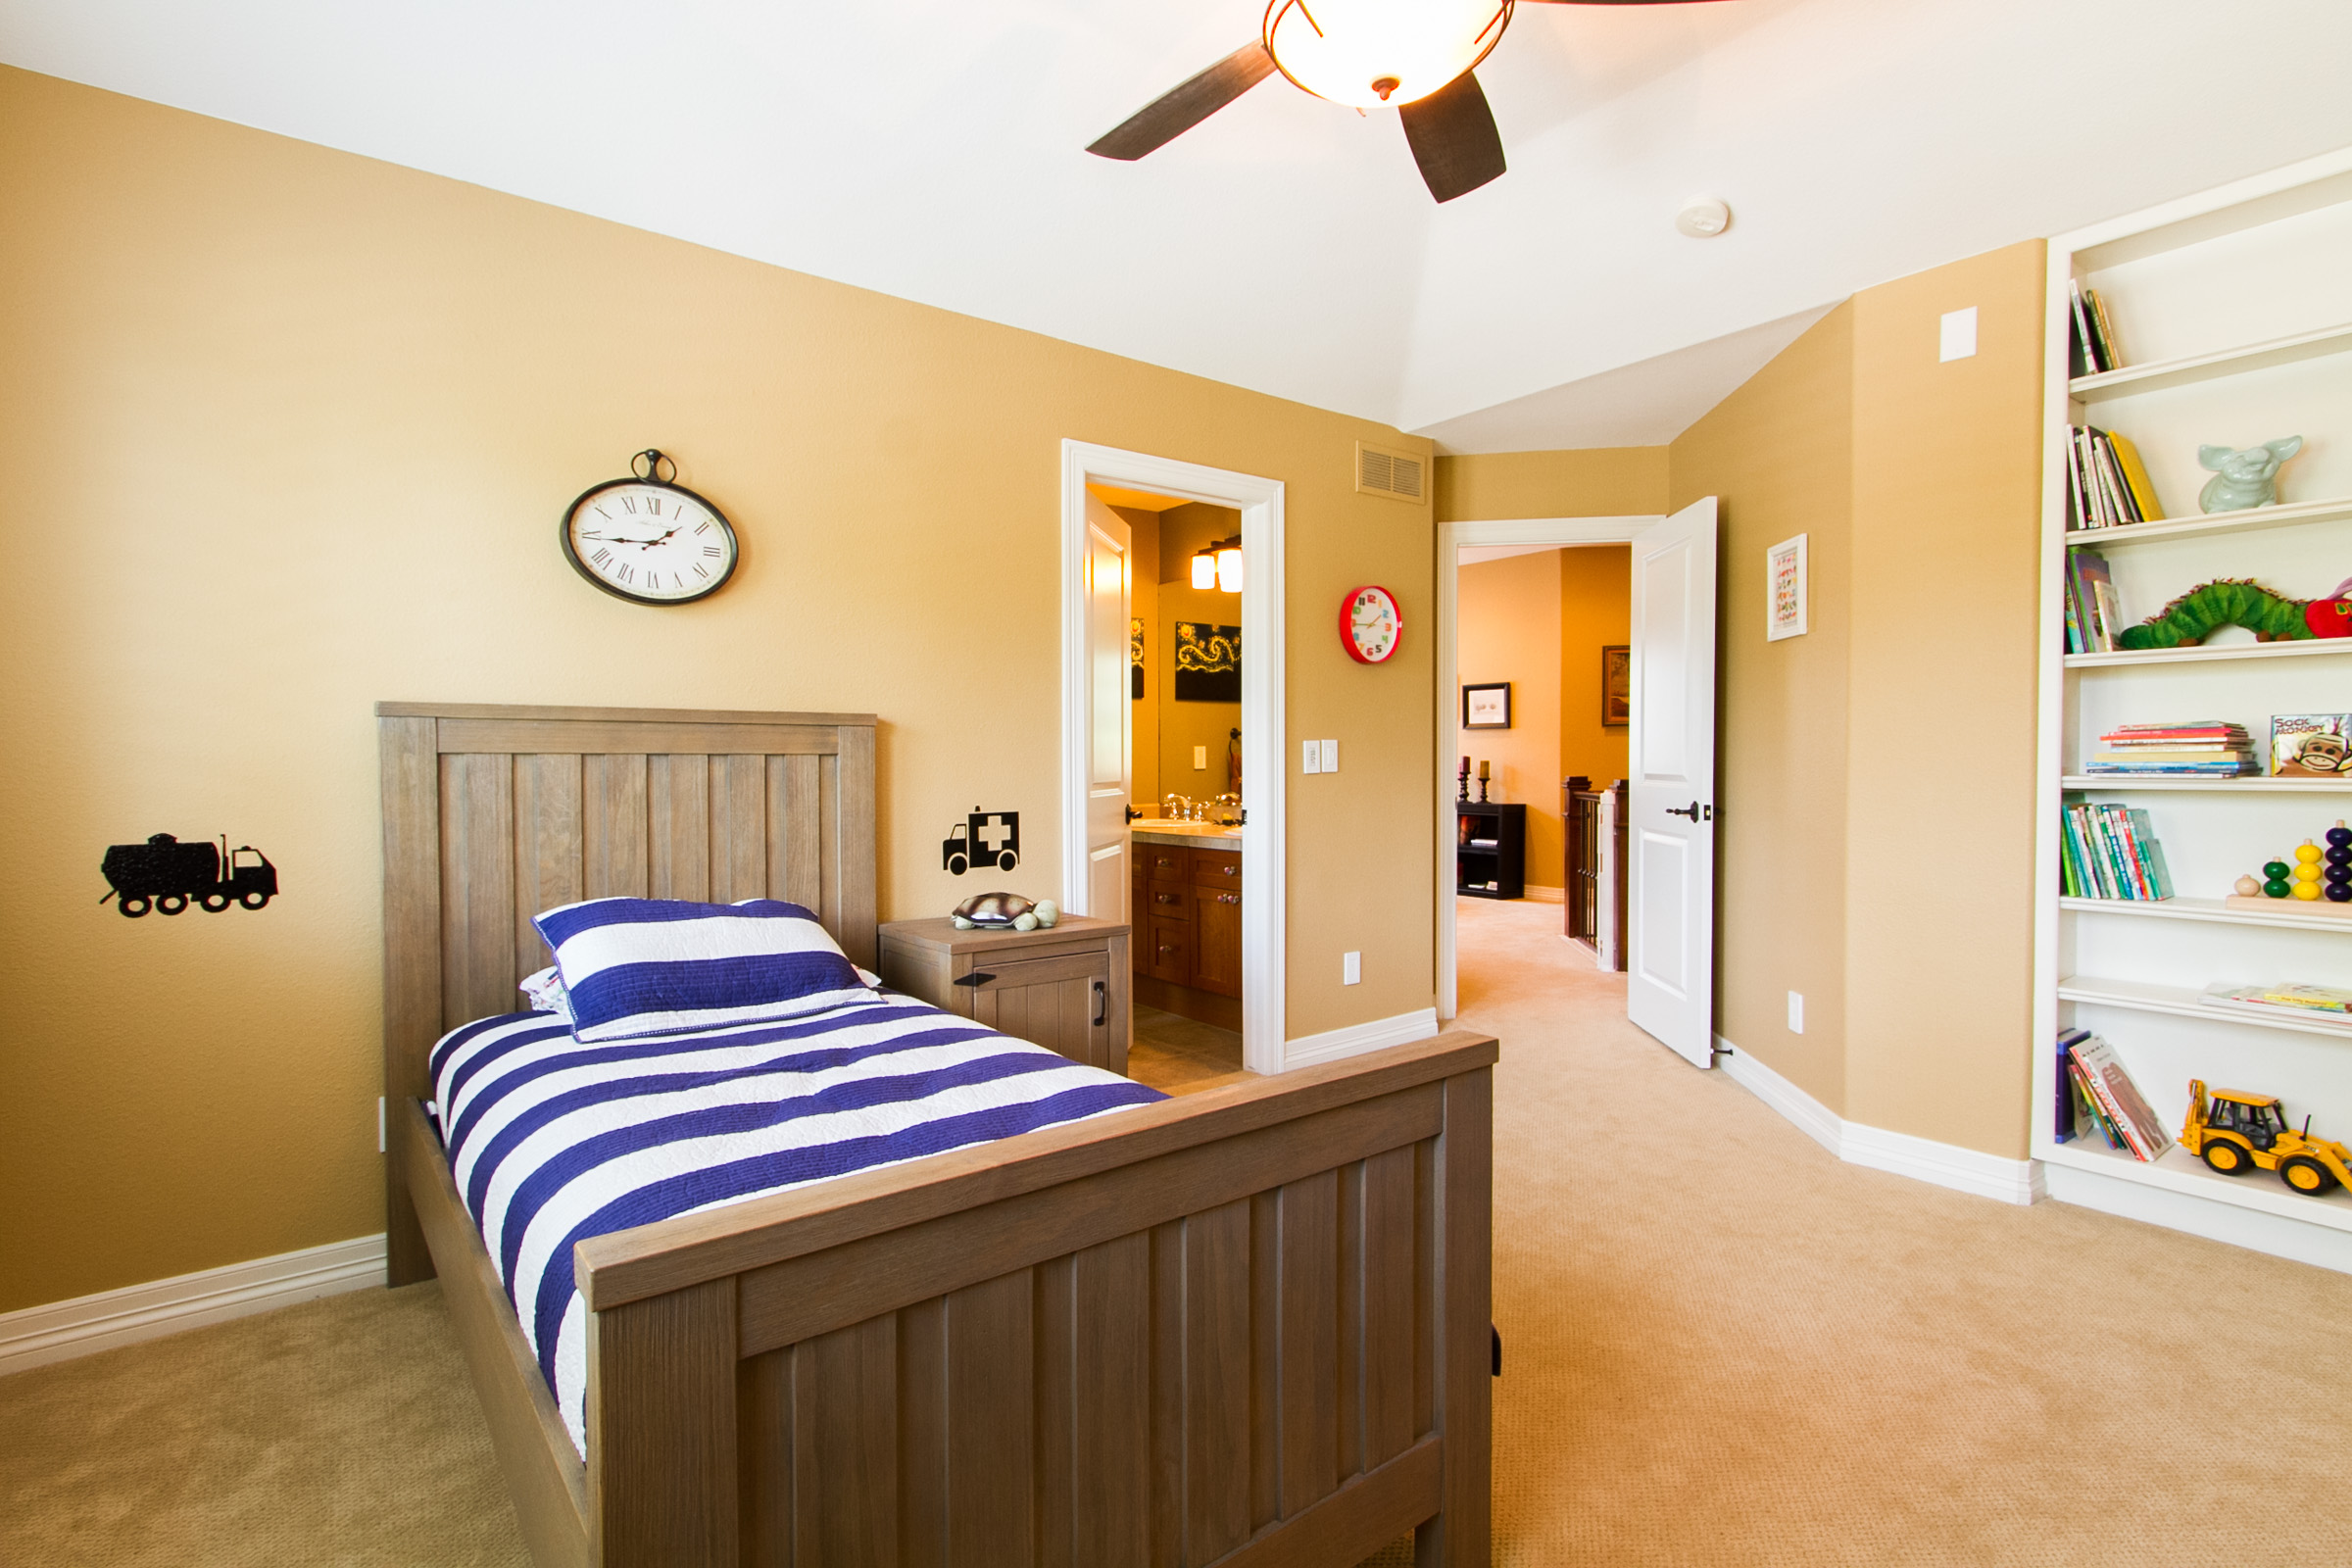 1368014_Bedroom-Two-with-Built-In-Shelving_high.jpg